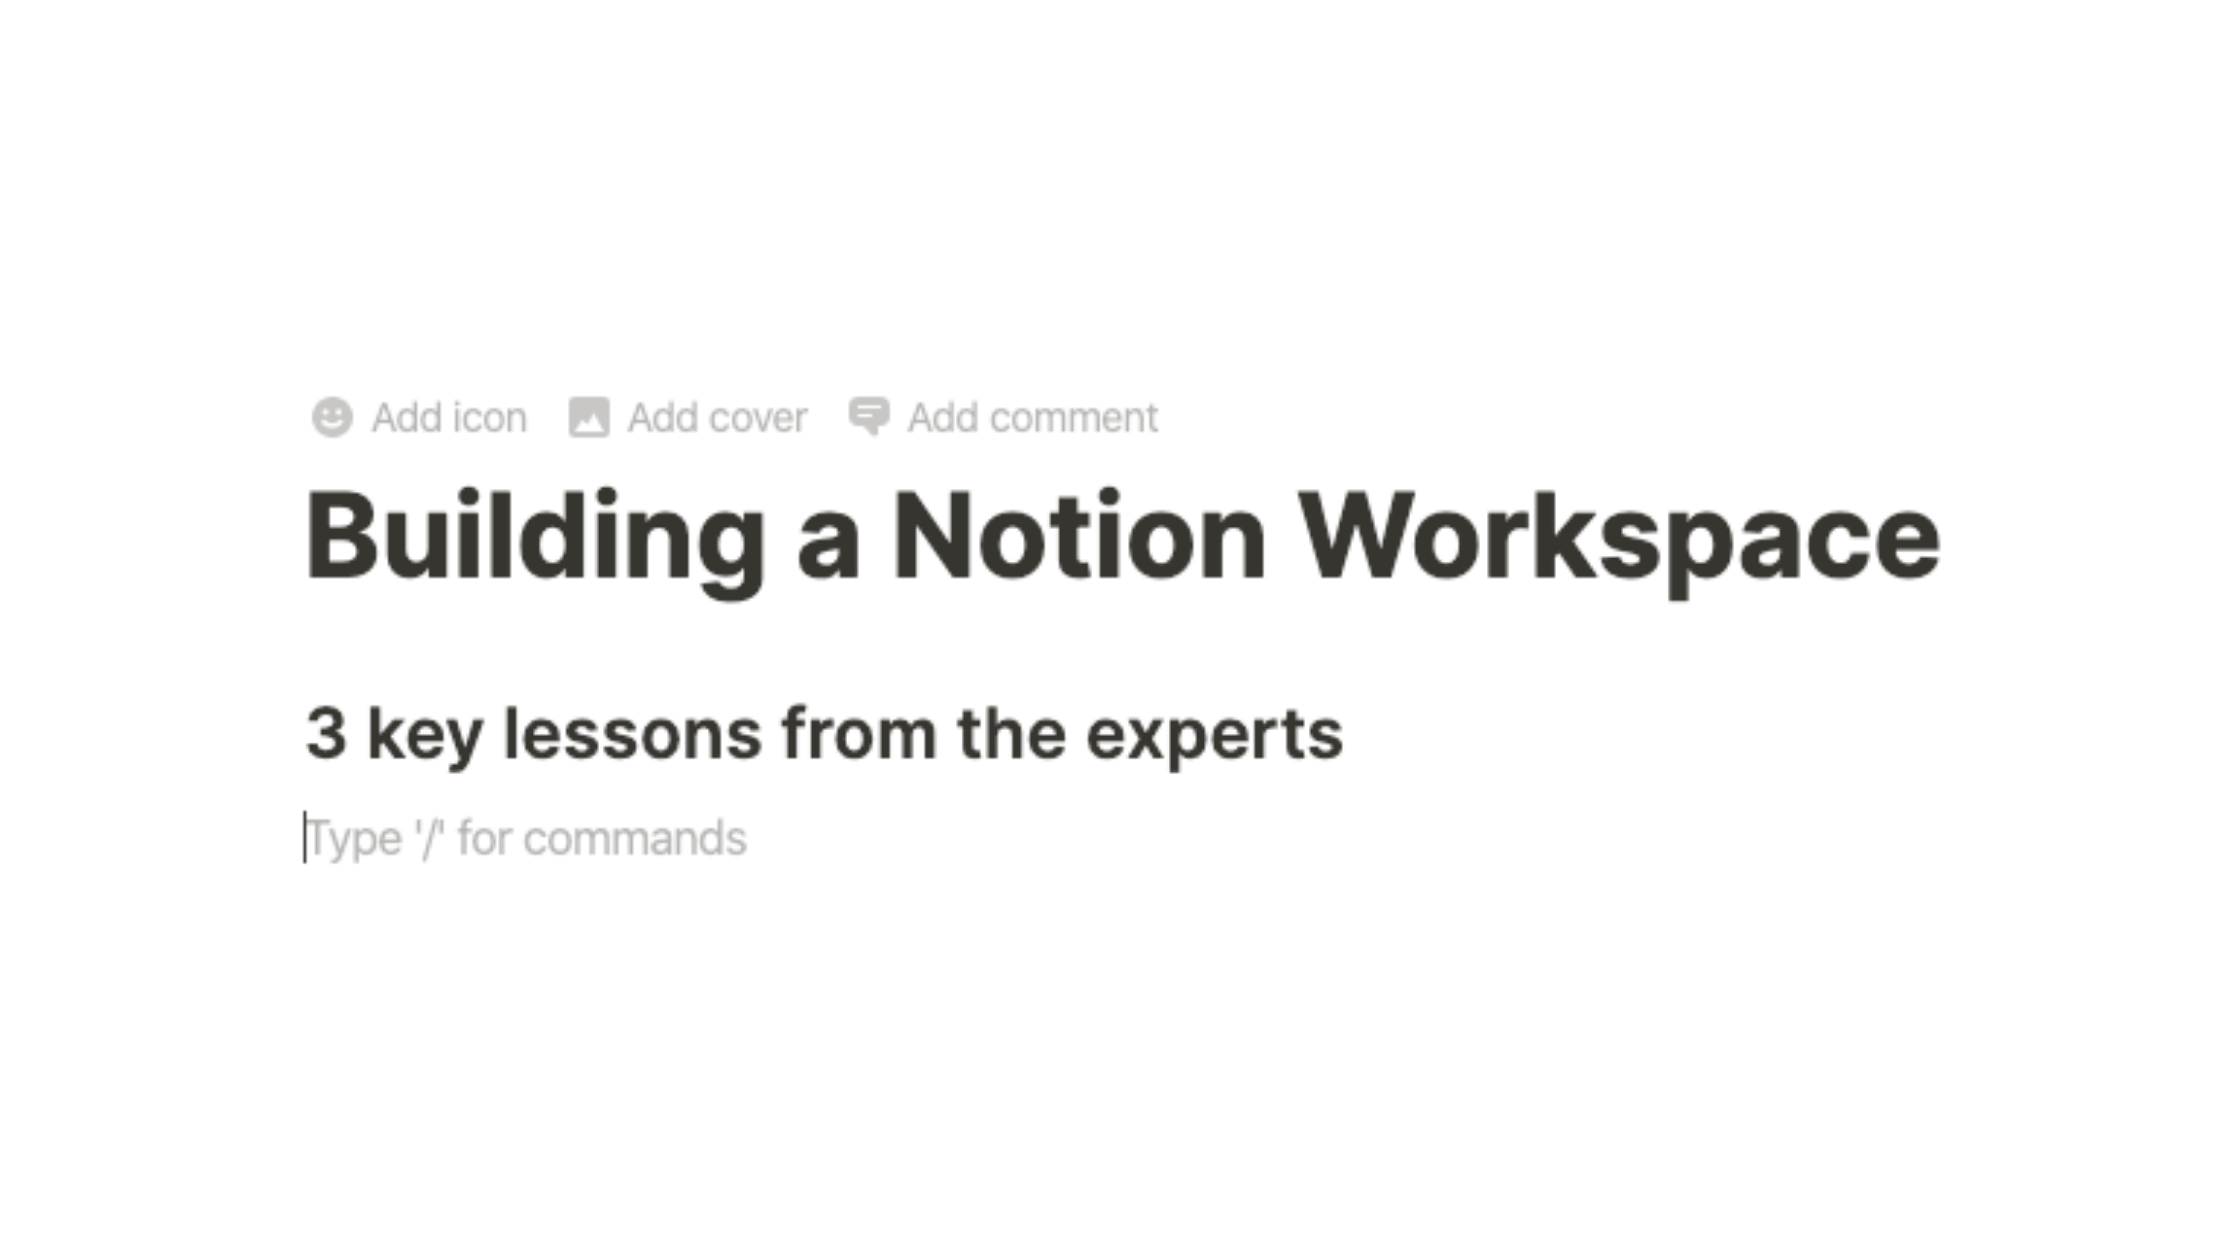 Building my Notion Workspace: 3 Key Lessons from Experts